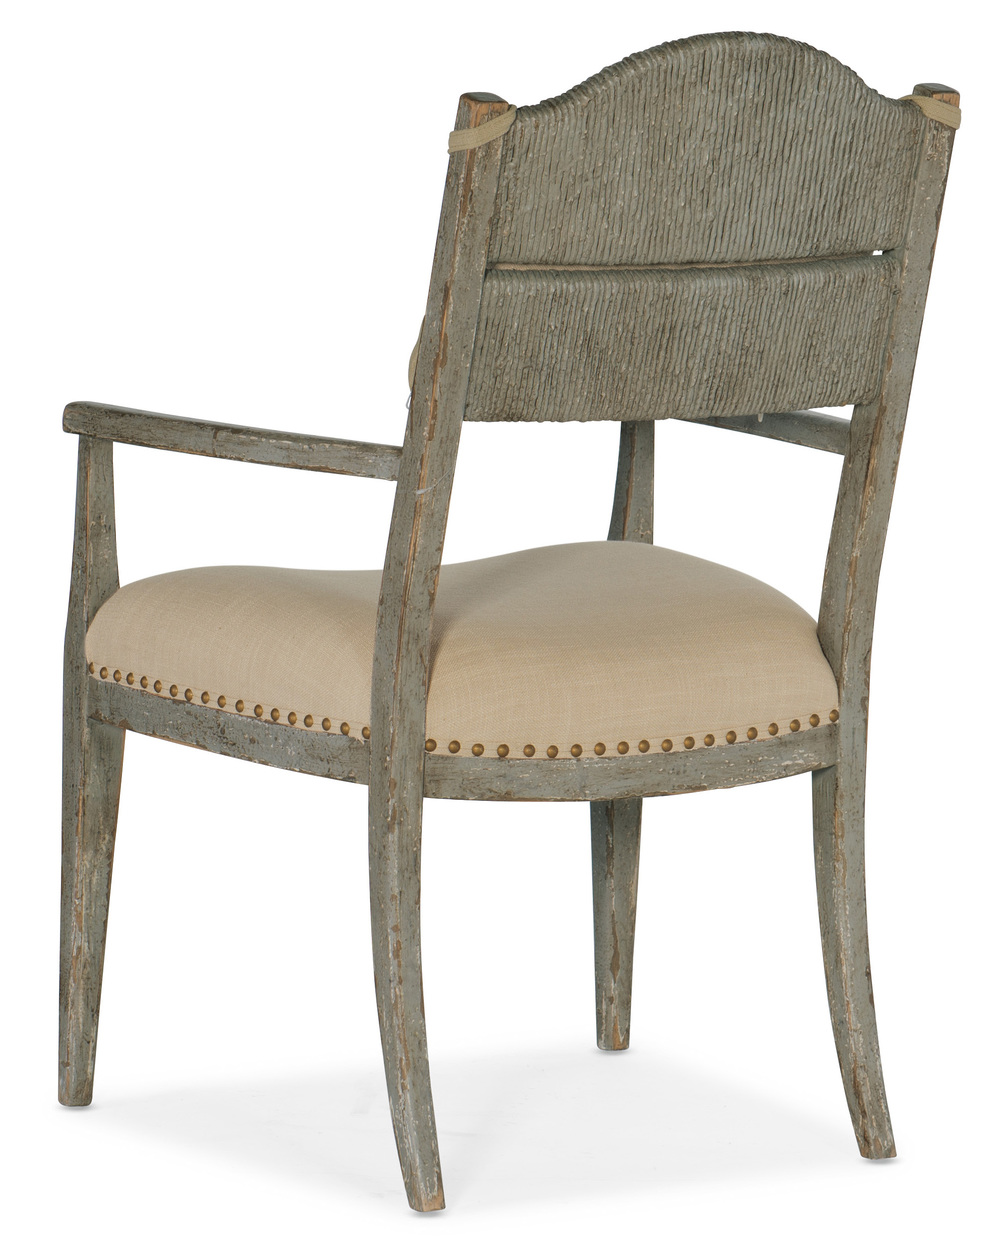 Hooker Furniture - Aperto Rush Arm Chair, 2/ctn